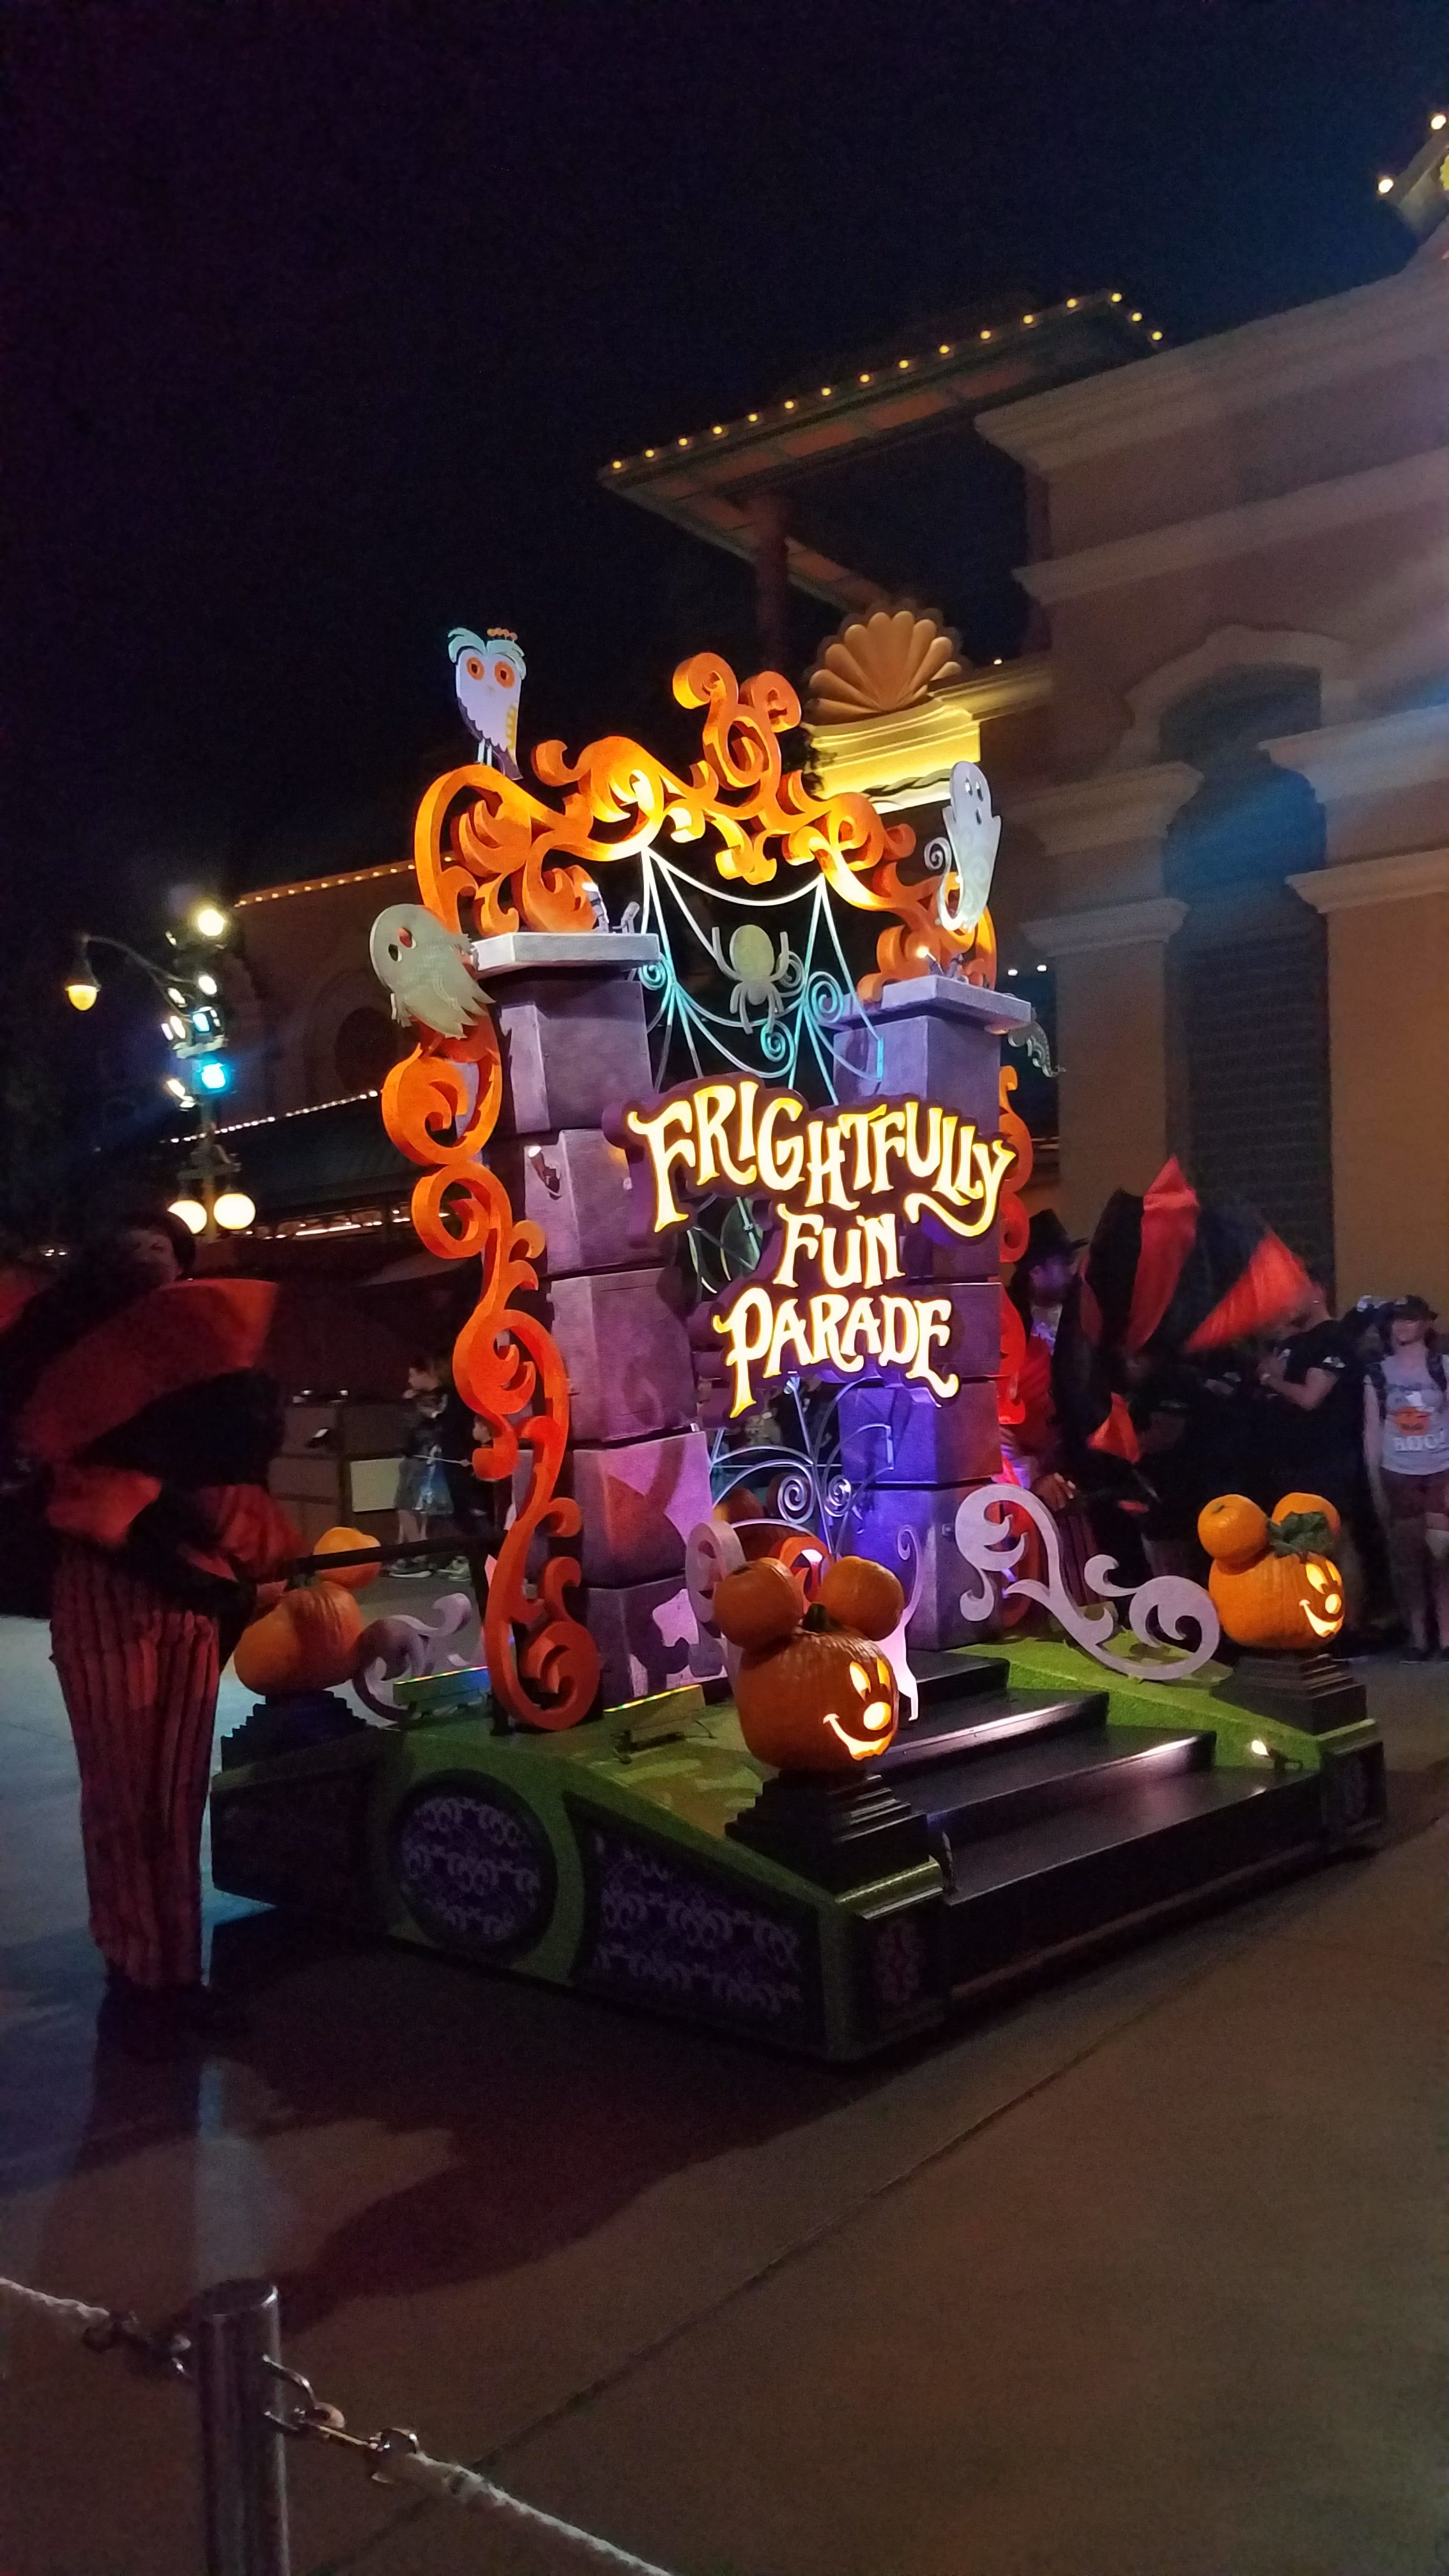 Frightfully Fun parade float